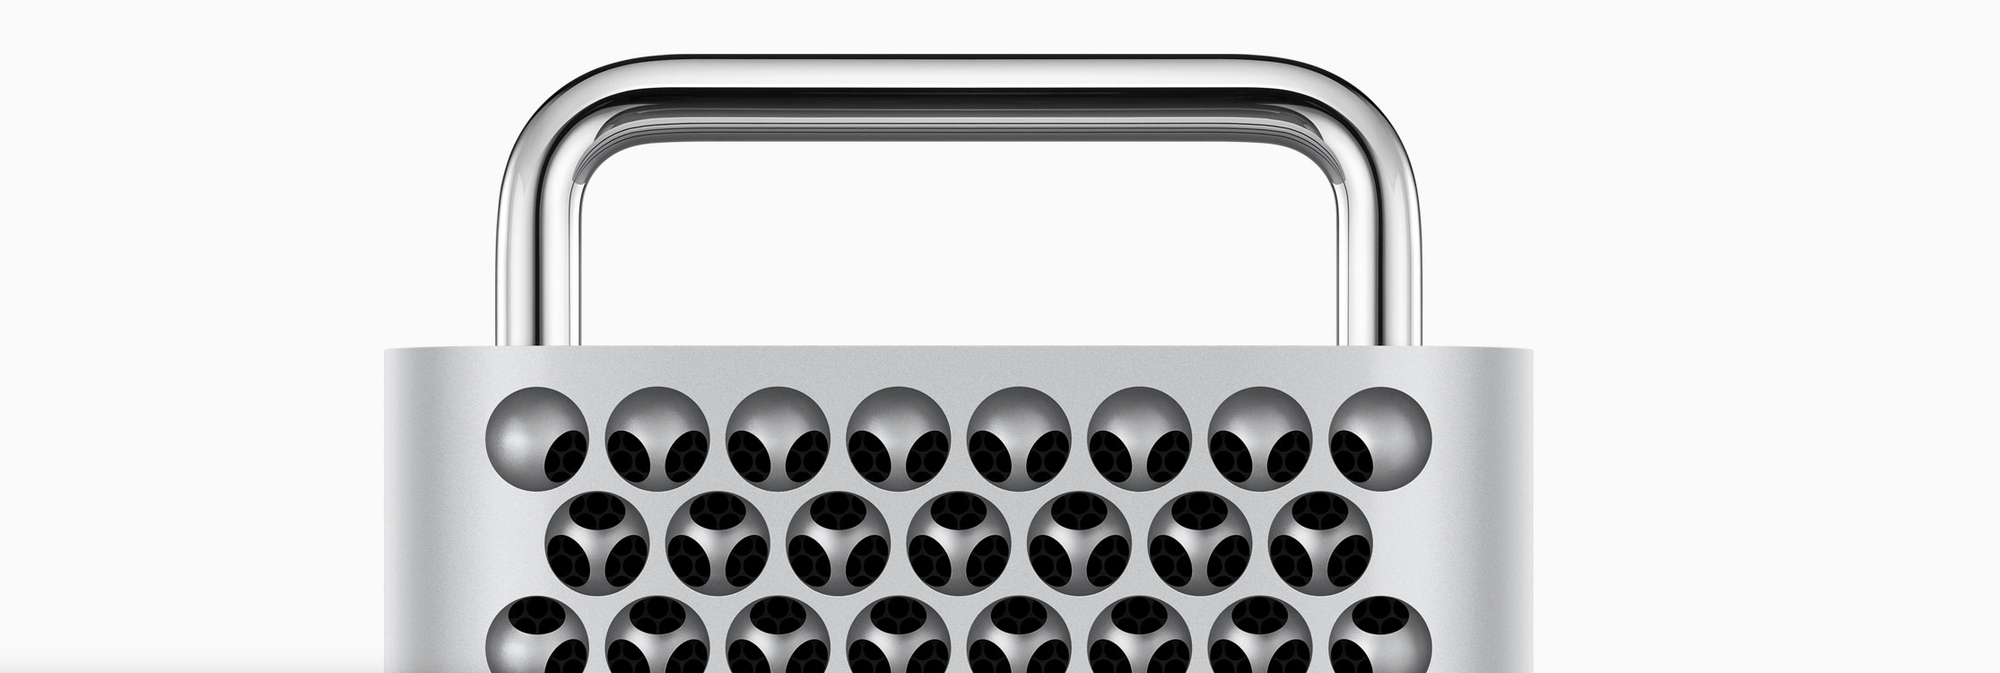 Apple accidently leaks that the new Mac Pro will be available in September.